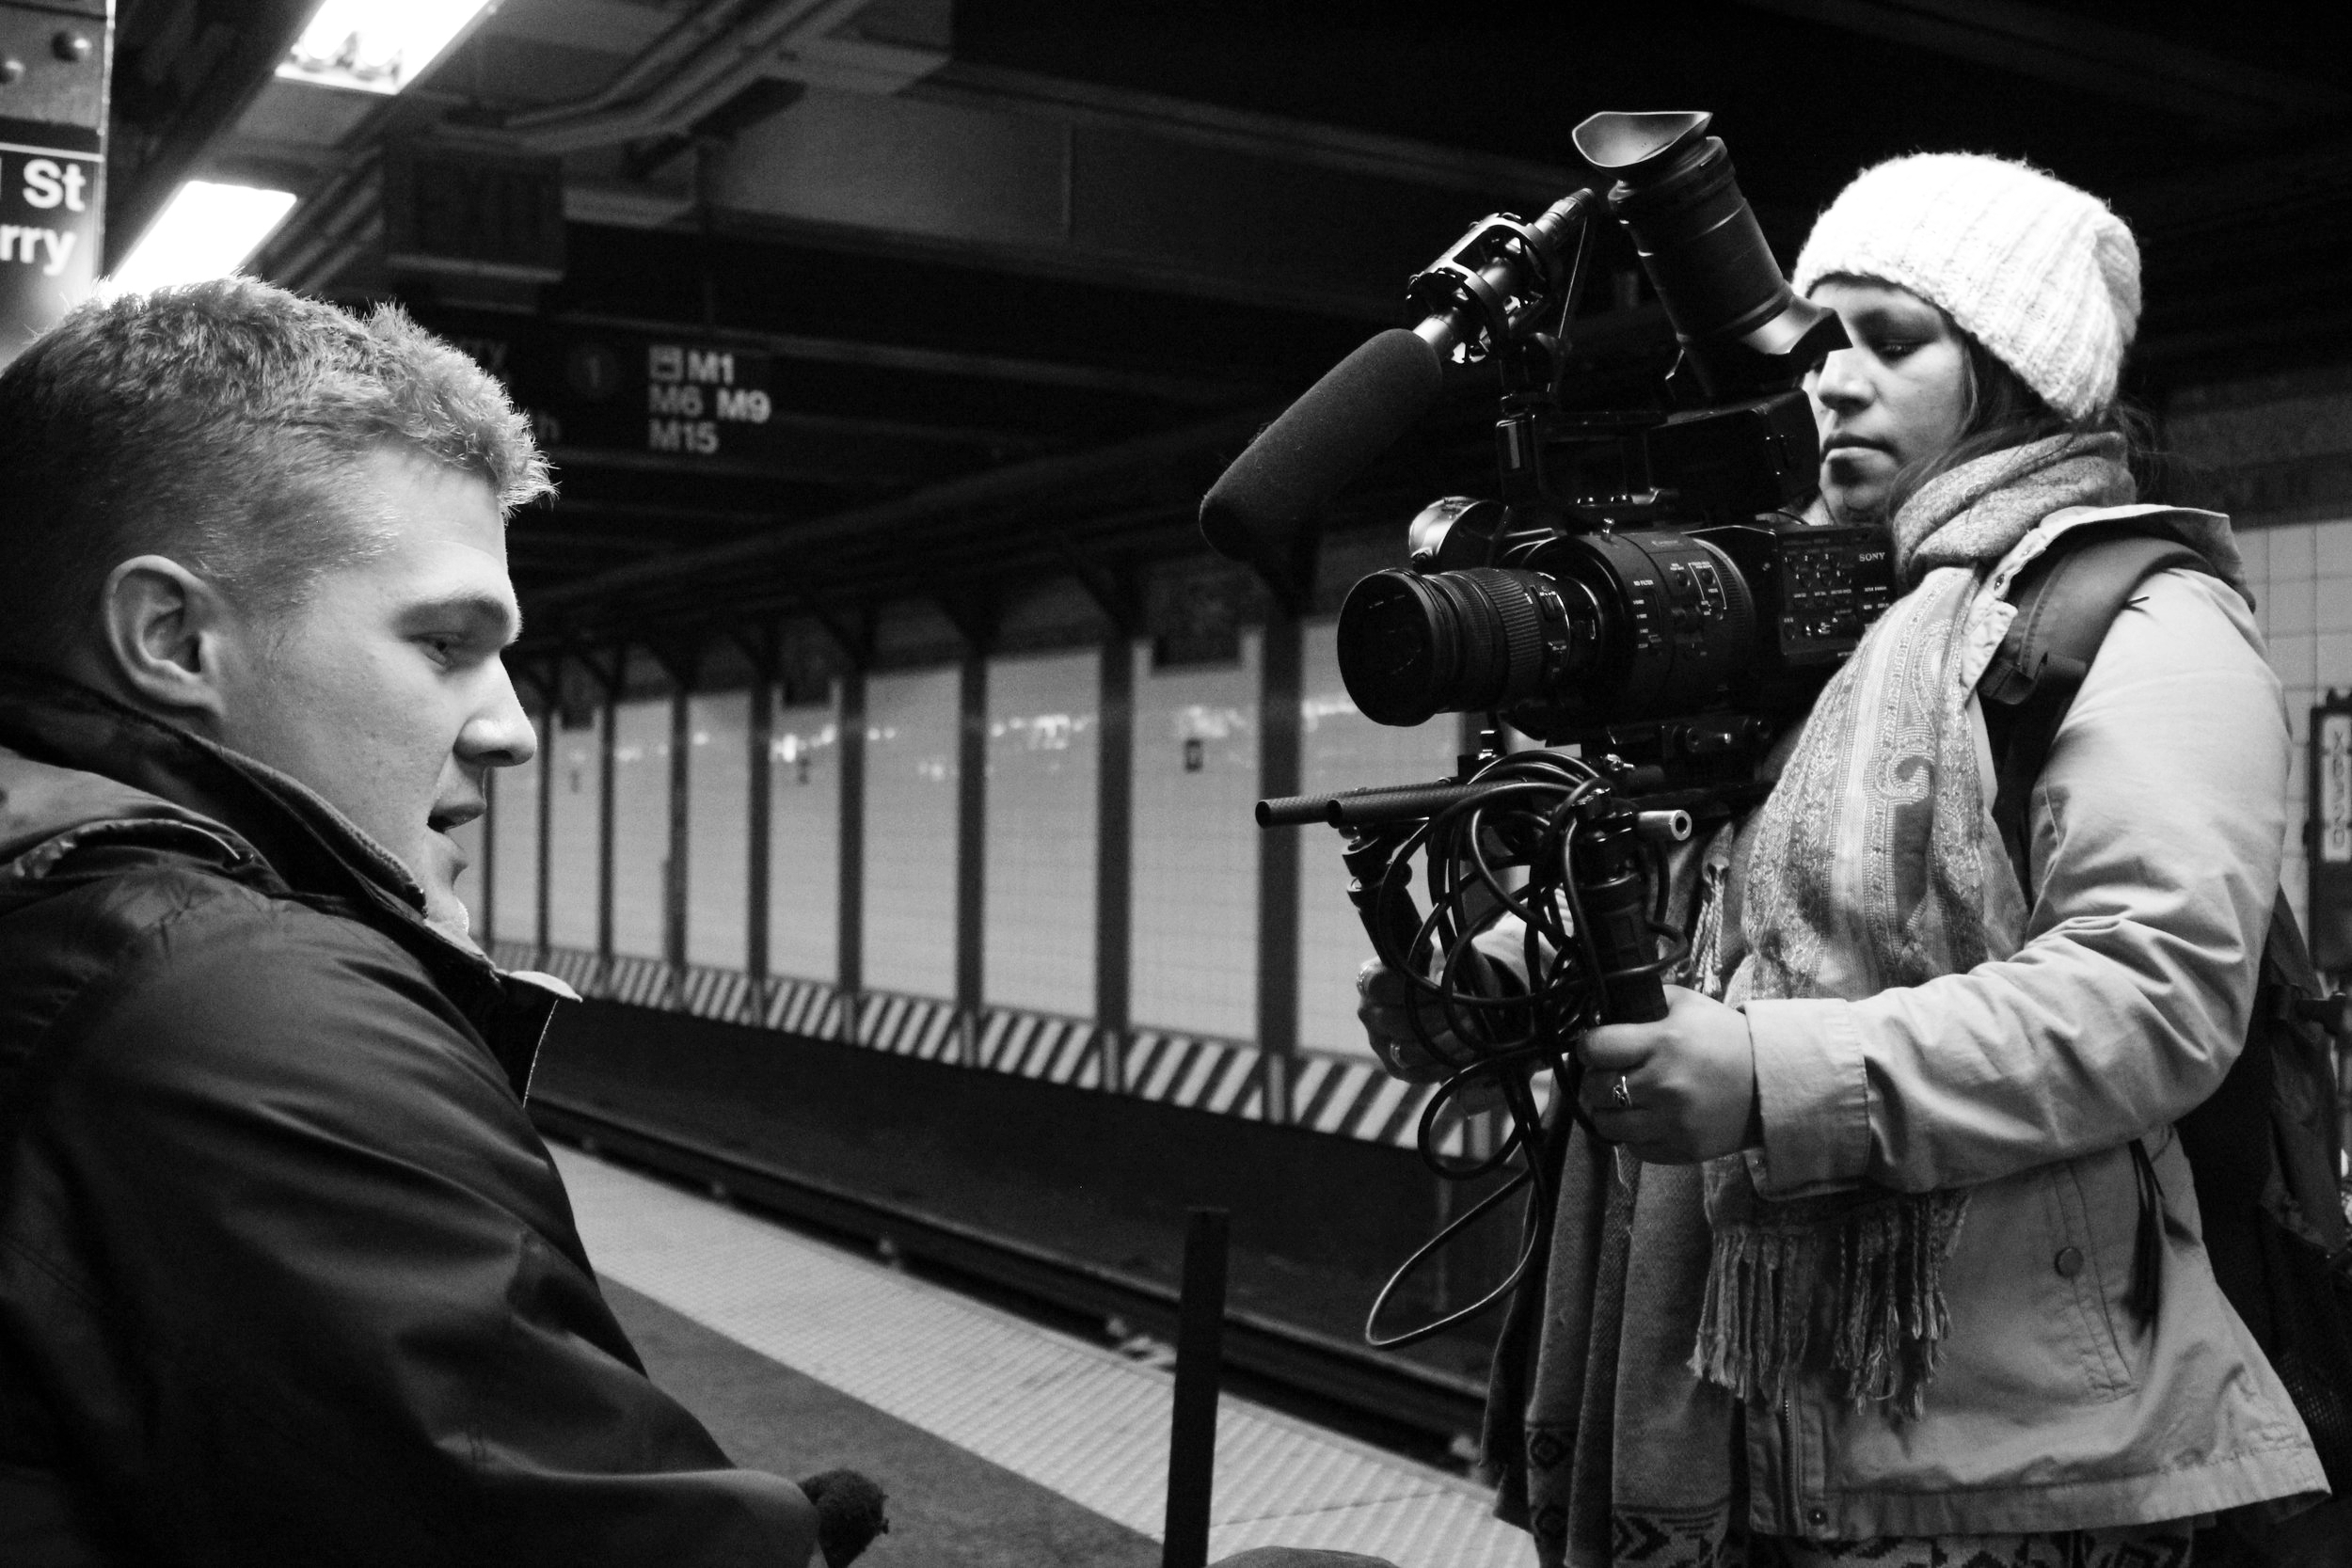 On set in New York City with DP Thomas Shannon, turning the lens to interview a member of the family on their idea of a lottery system.